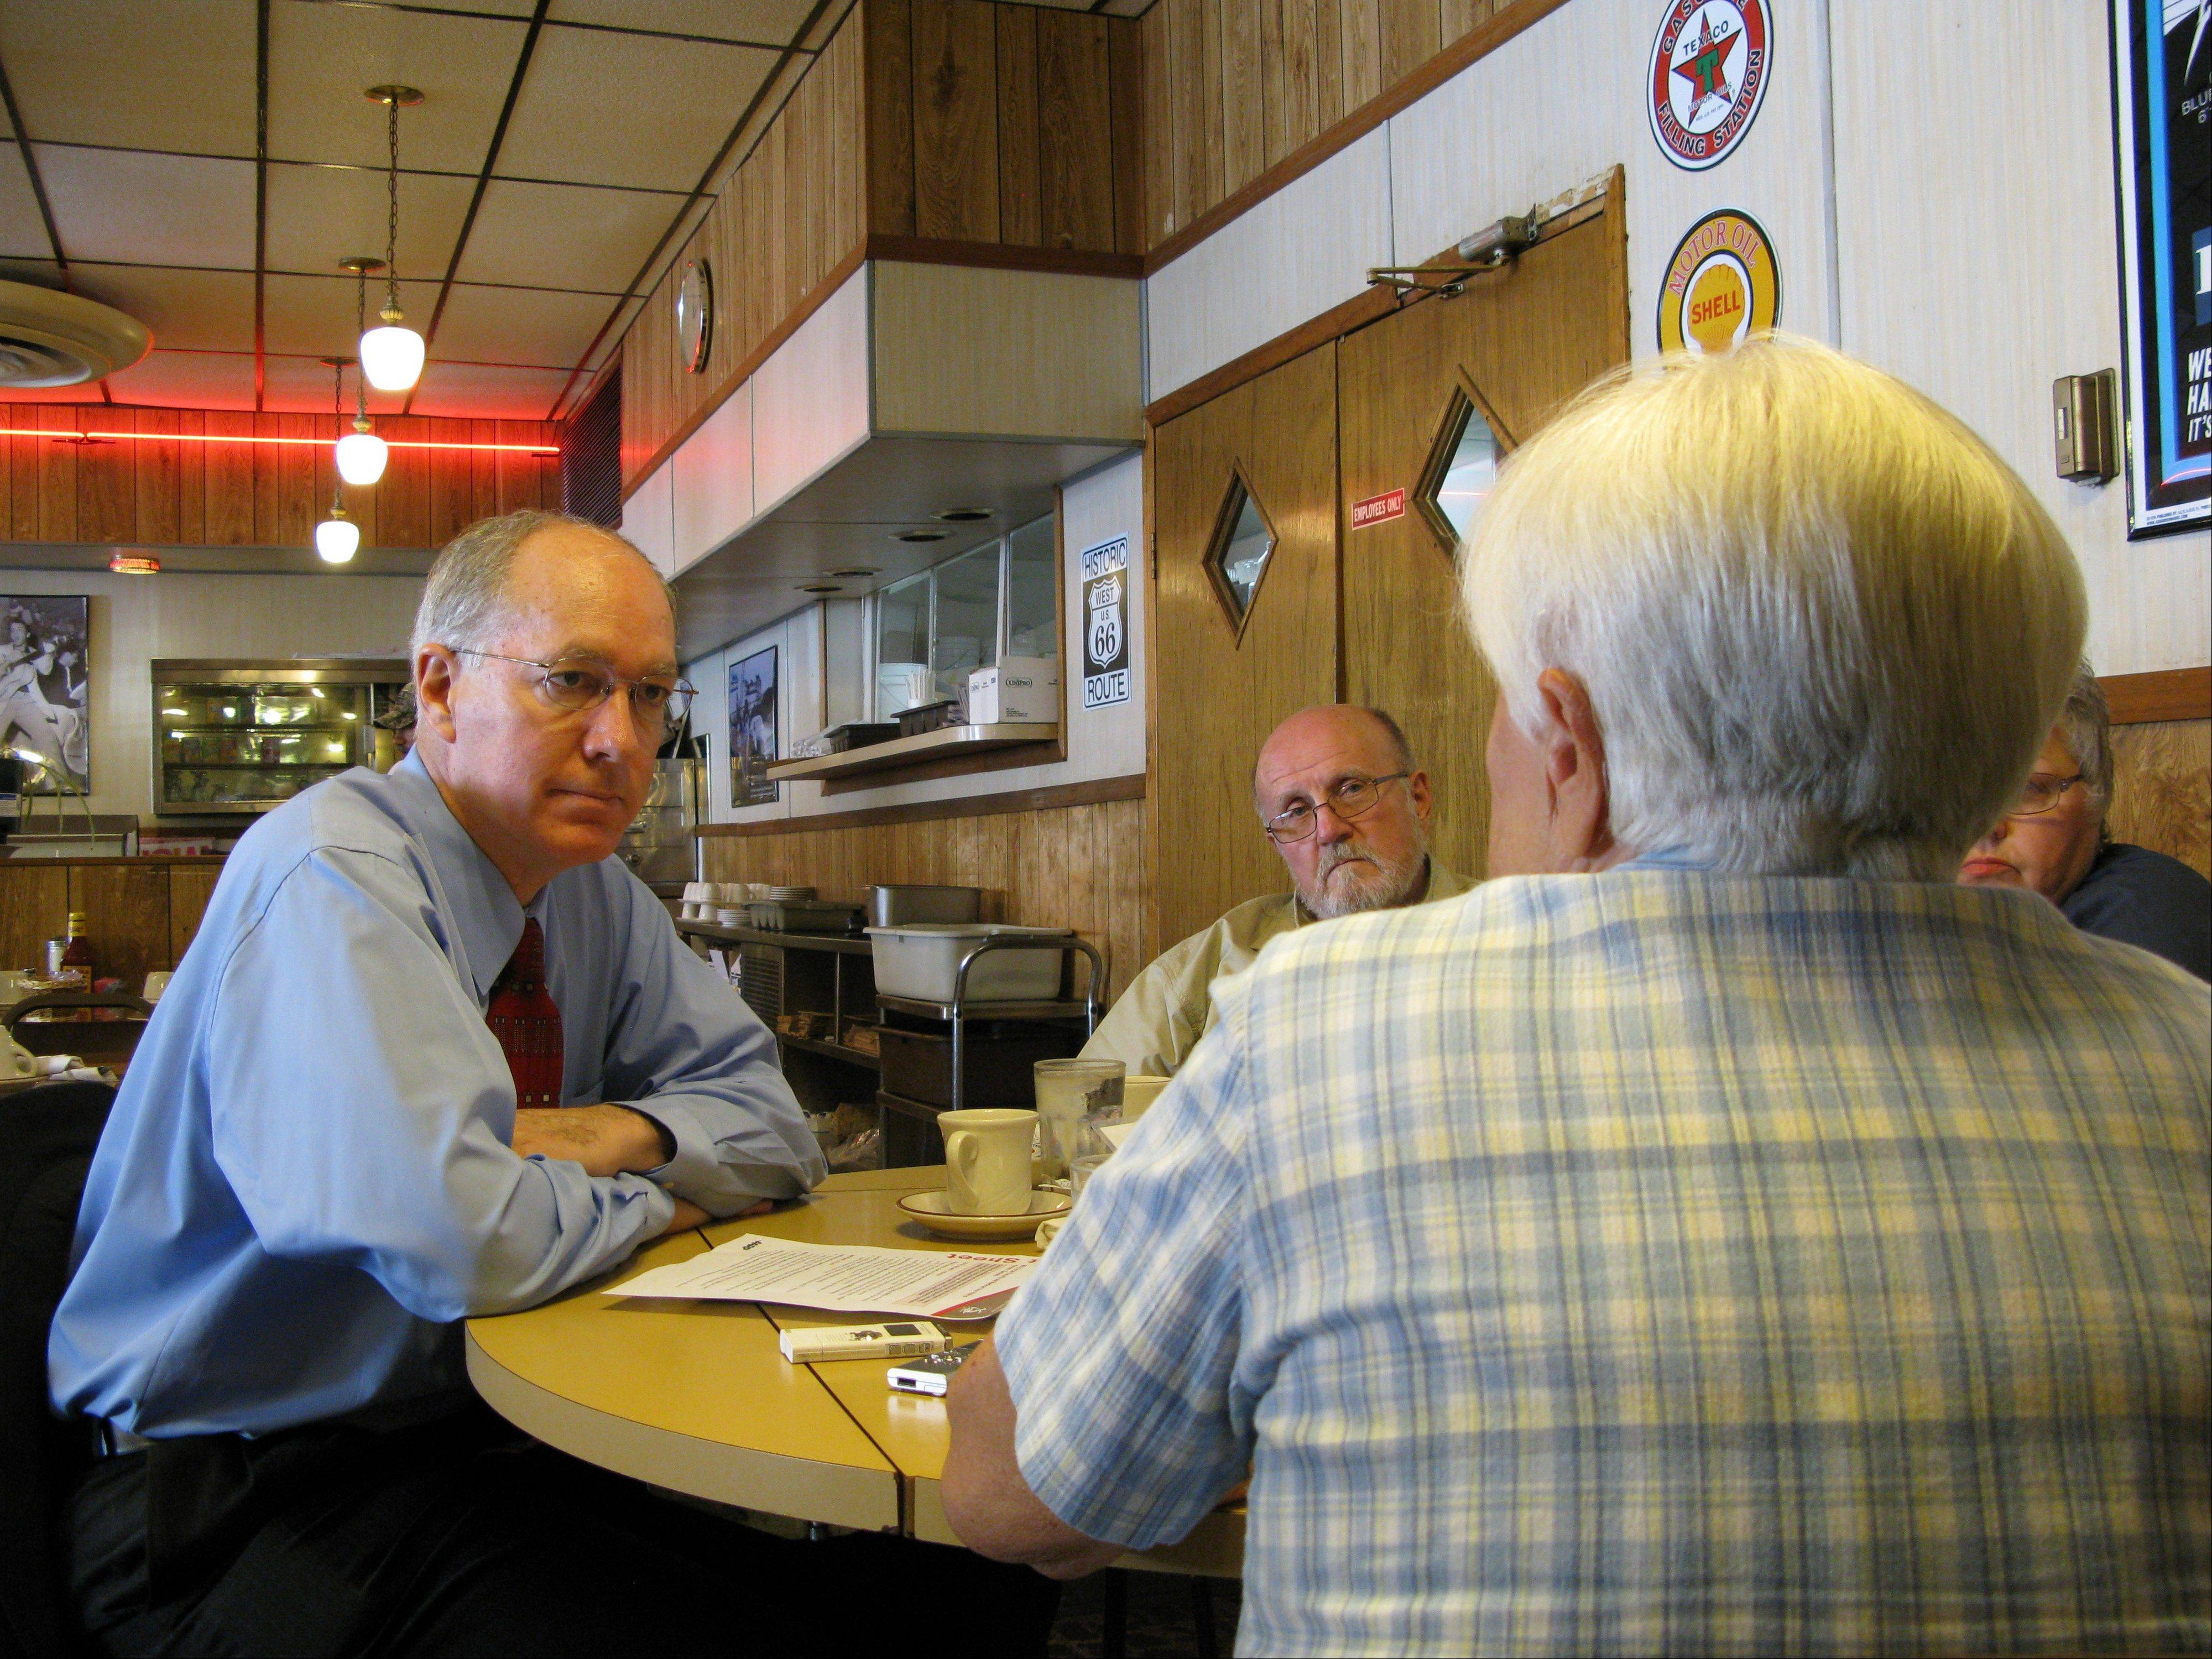 Democrat Bill Foster met with a small group of senior citizens in downtown Joliet Friday afternoon to get a feel for lingering concerns about the future of Social Security. Foster believes the solvency of Social Security won't be an imminent threat until 2037.